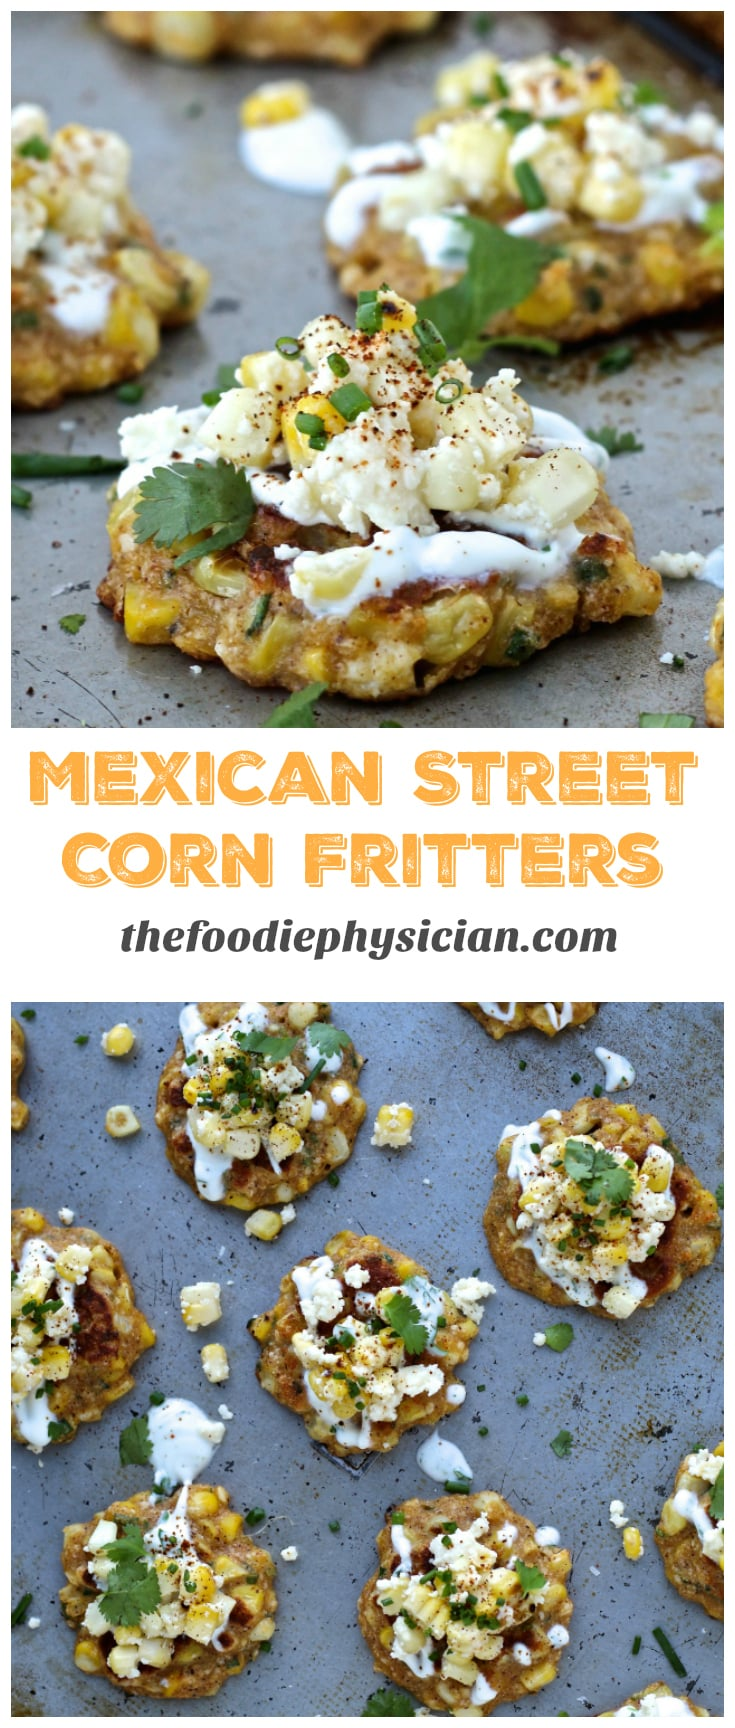 Mexican Street Corn Fritters | @foodiephysician